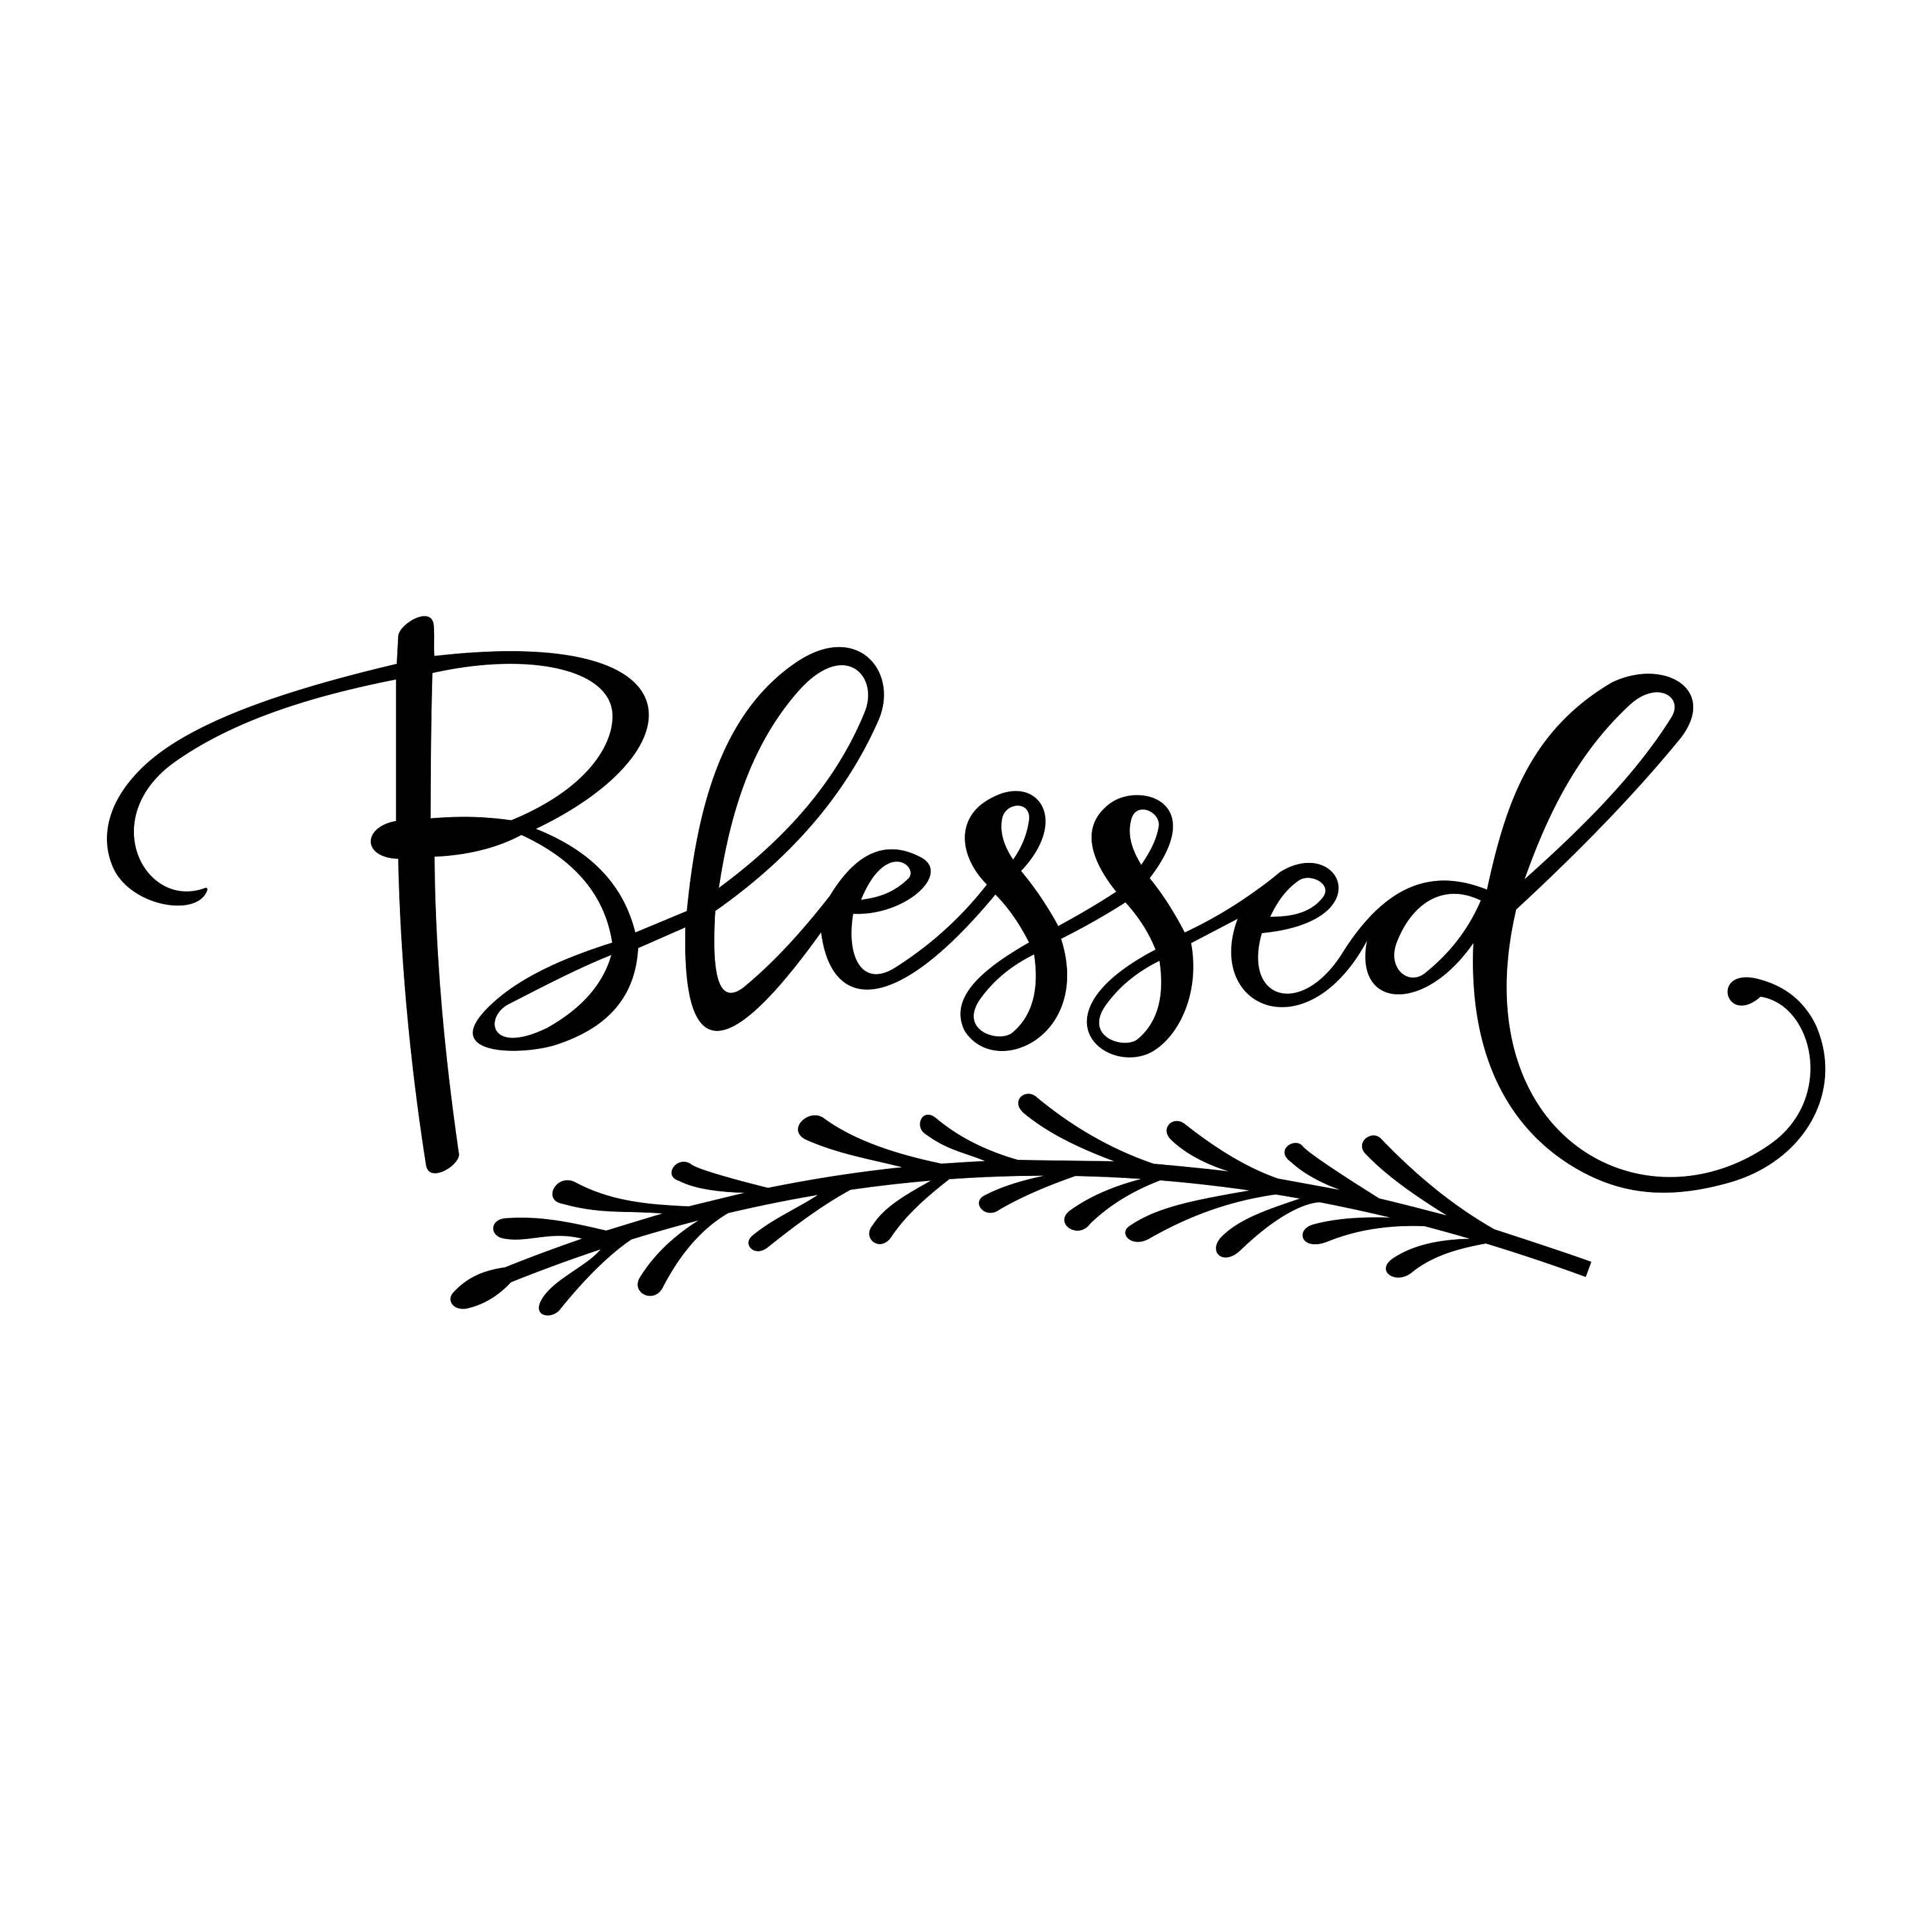 Blessed Phrase Graphics Svg Dxf Eps Cdr Ai Vector